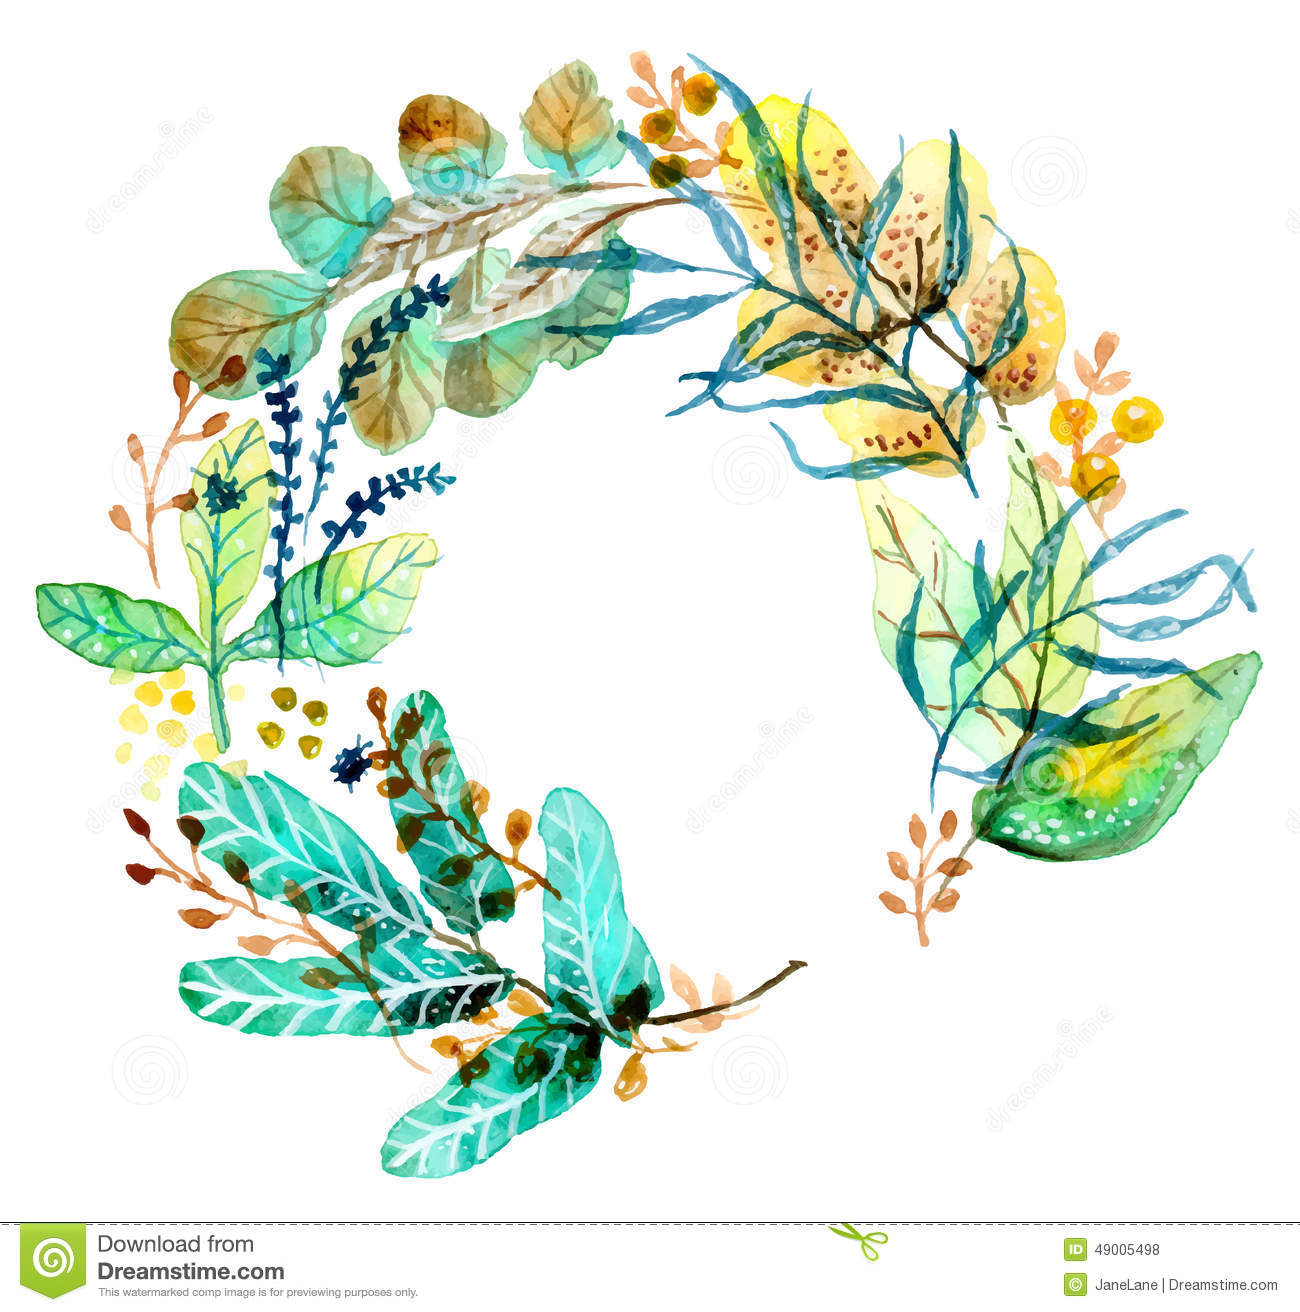 Watercolor Floral Frame, Colorful Natural Illustration Stock Vector ...